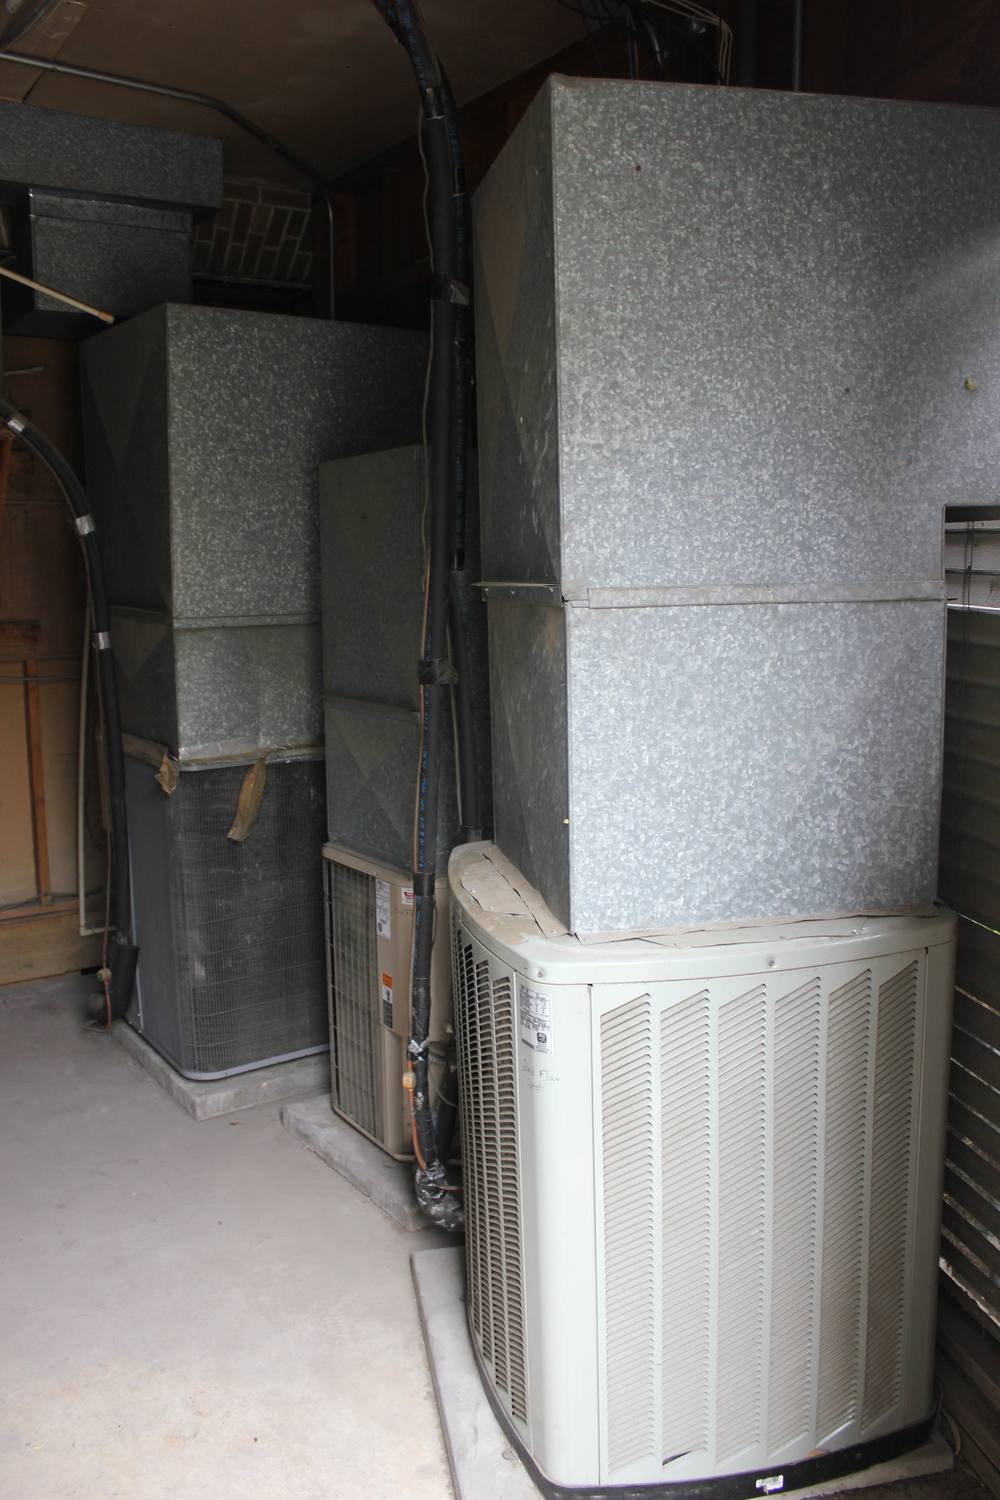 ac condenser units hidden with hood venting